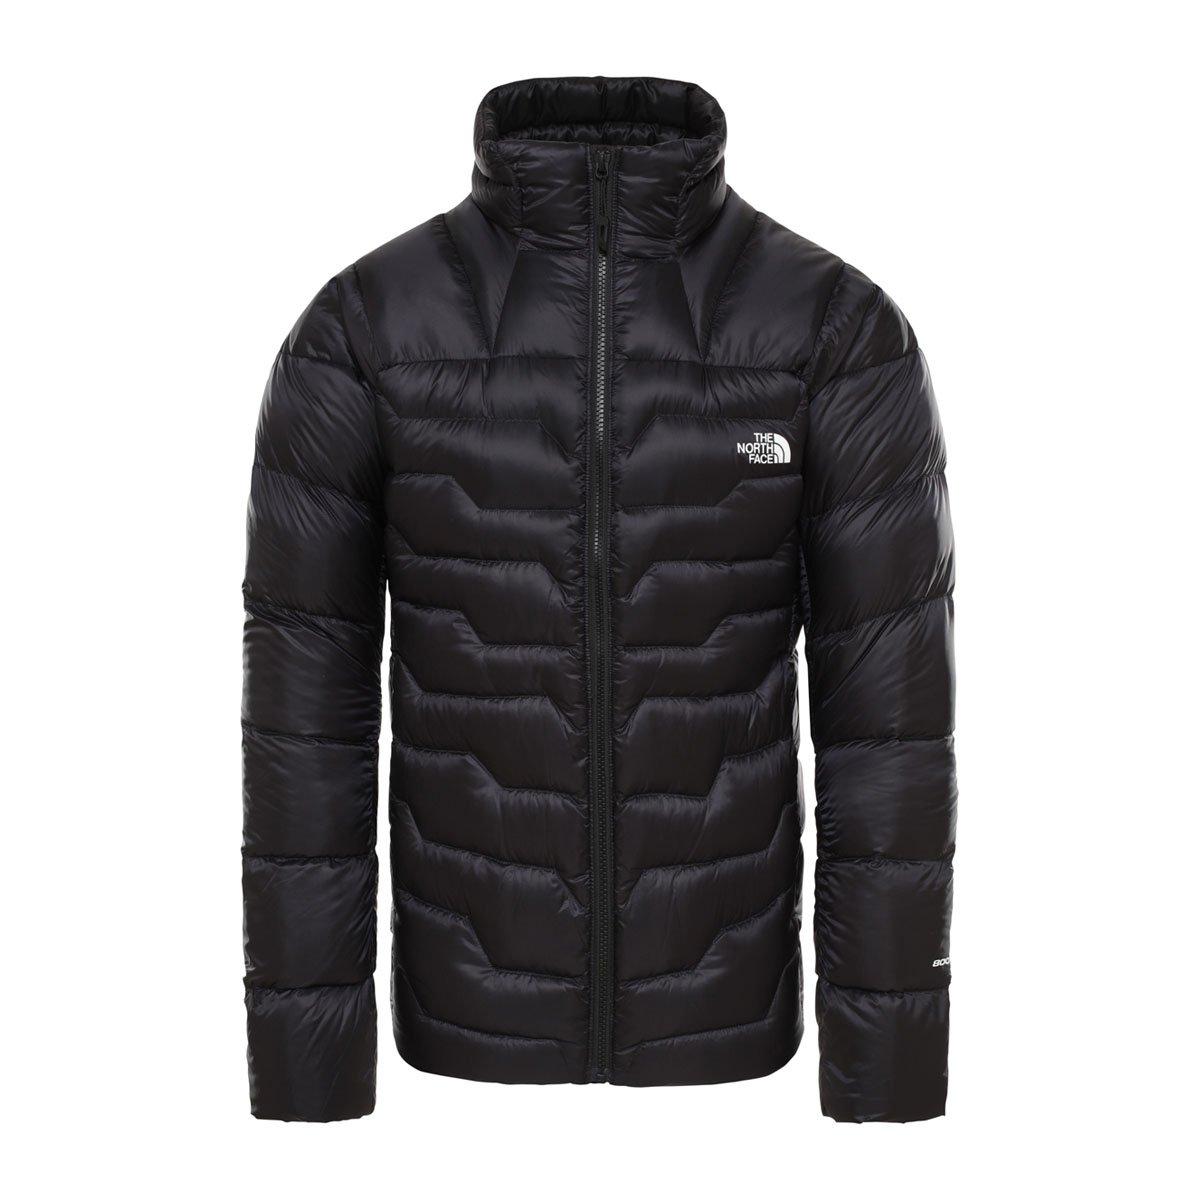 INDEPENDOR DOWN JACKET